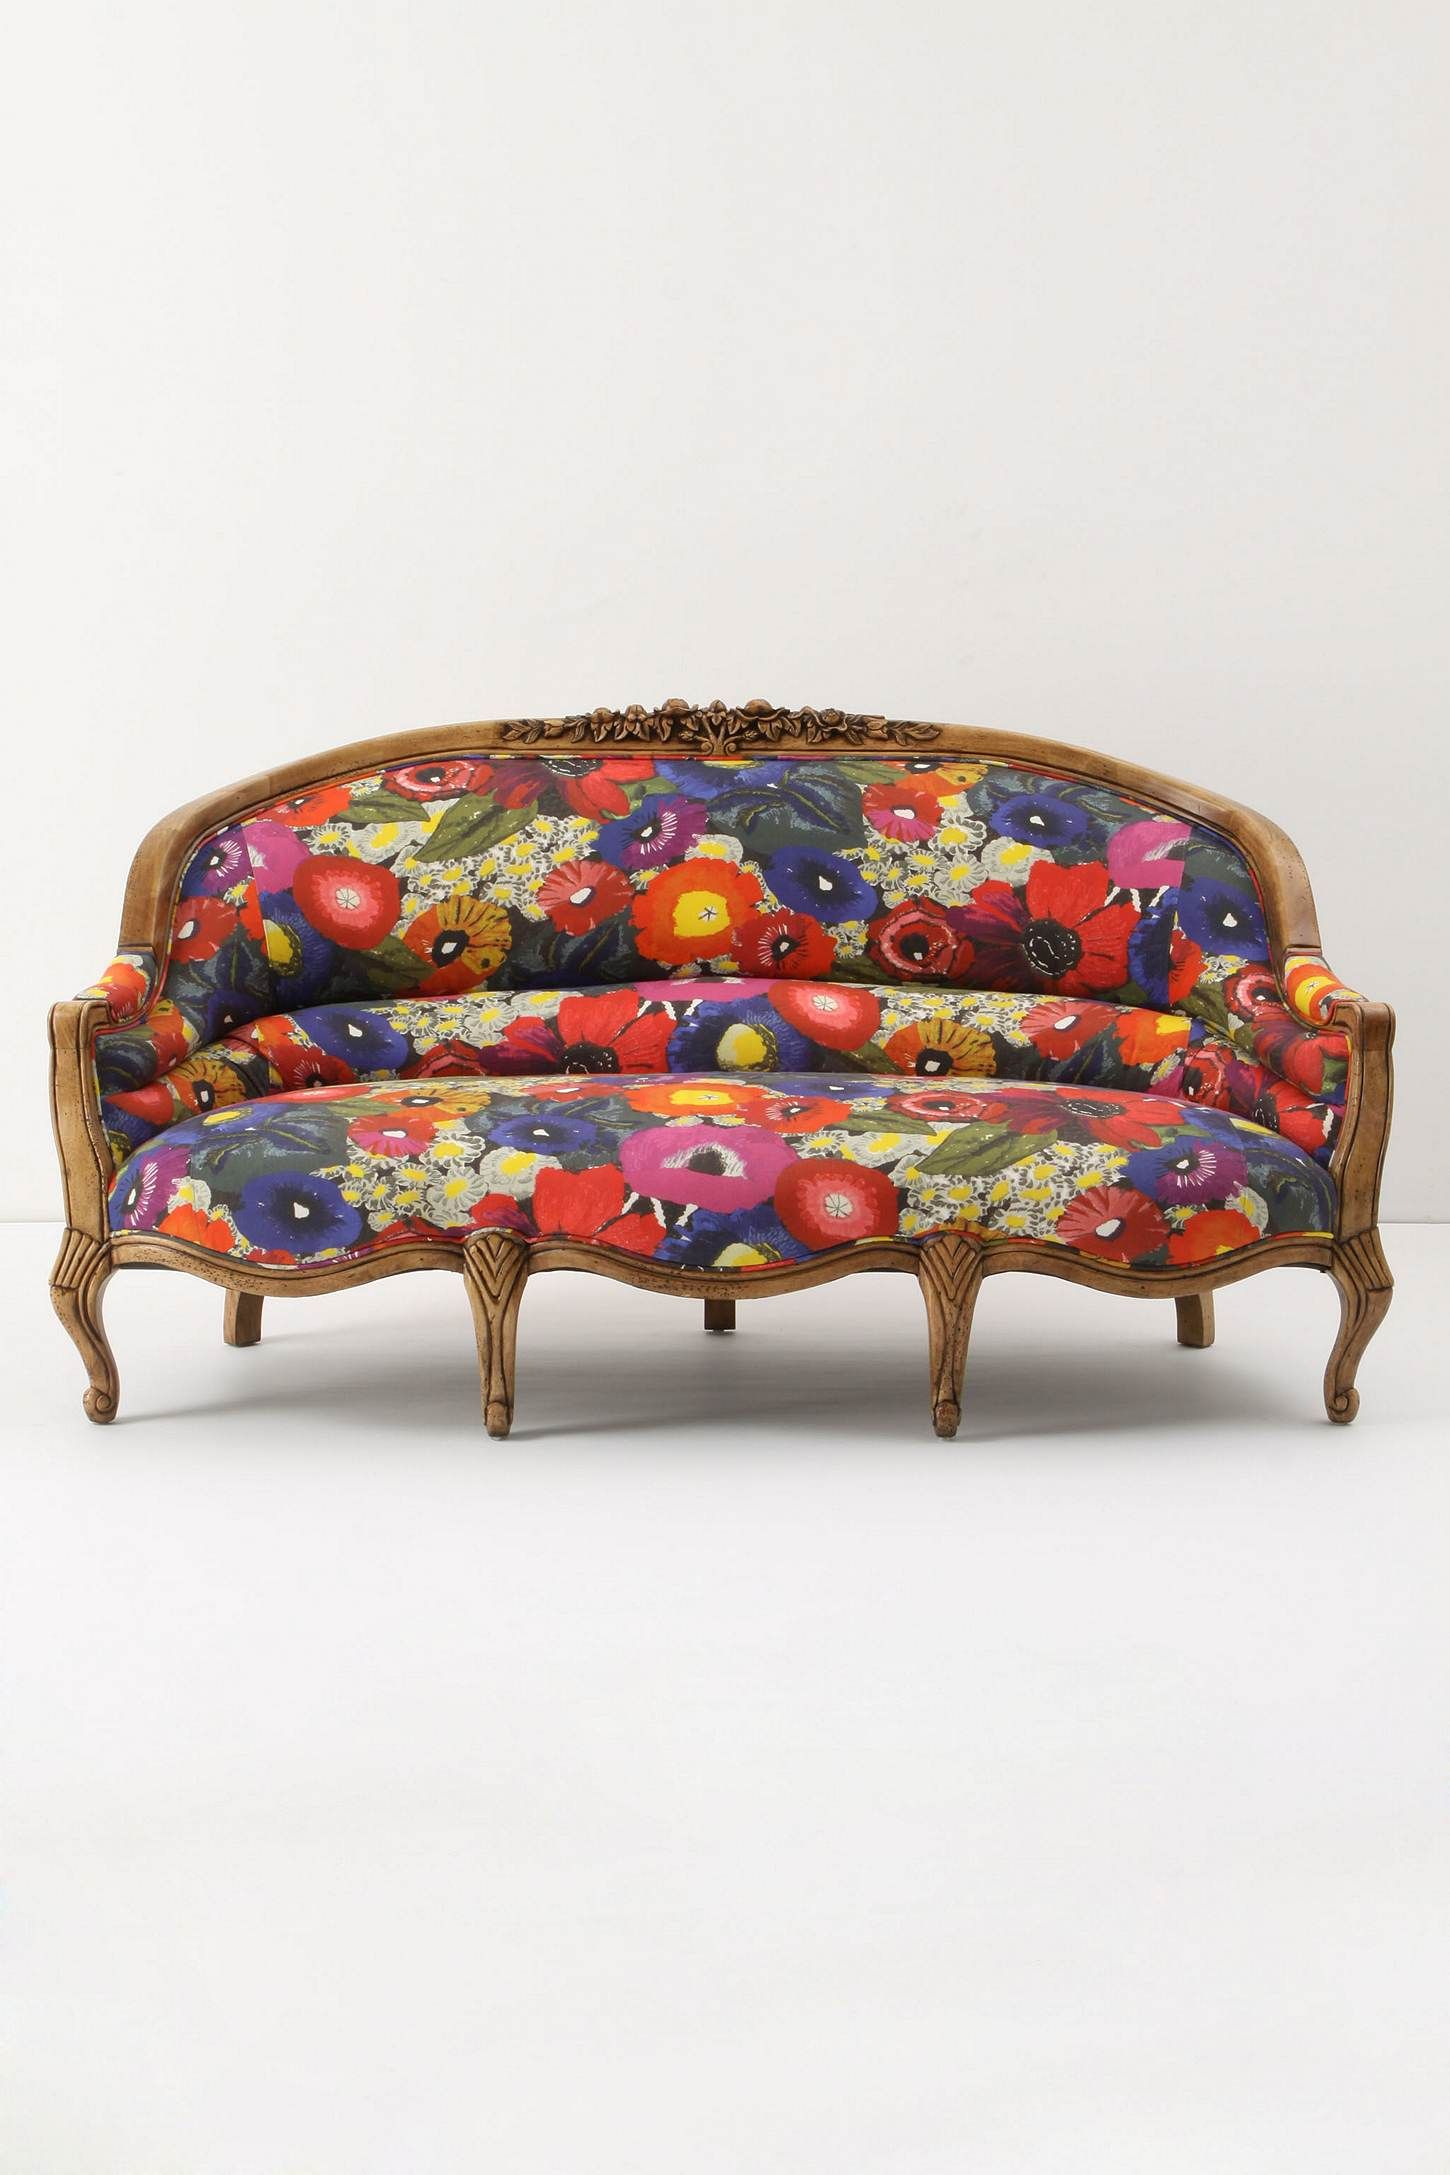 Gorgeous Floral Sofa Inspiration - Anthropologie - http://www.anthropologie.com/anthro/catalog/productdetail.jsp?id=063271&catId=HOME-FURNITURE&pushId=HOME-FURNITURE&popId=HOME&navCount=14&color=095&isProduct=true&fromCategoryPage=true&isSubcategory=true&subCategoryId=HOME-FURNITURE-LIVING